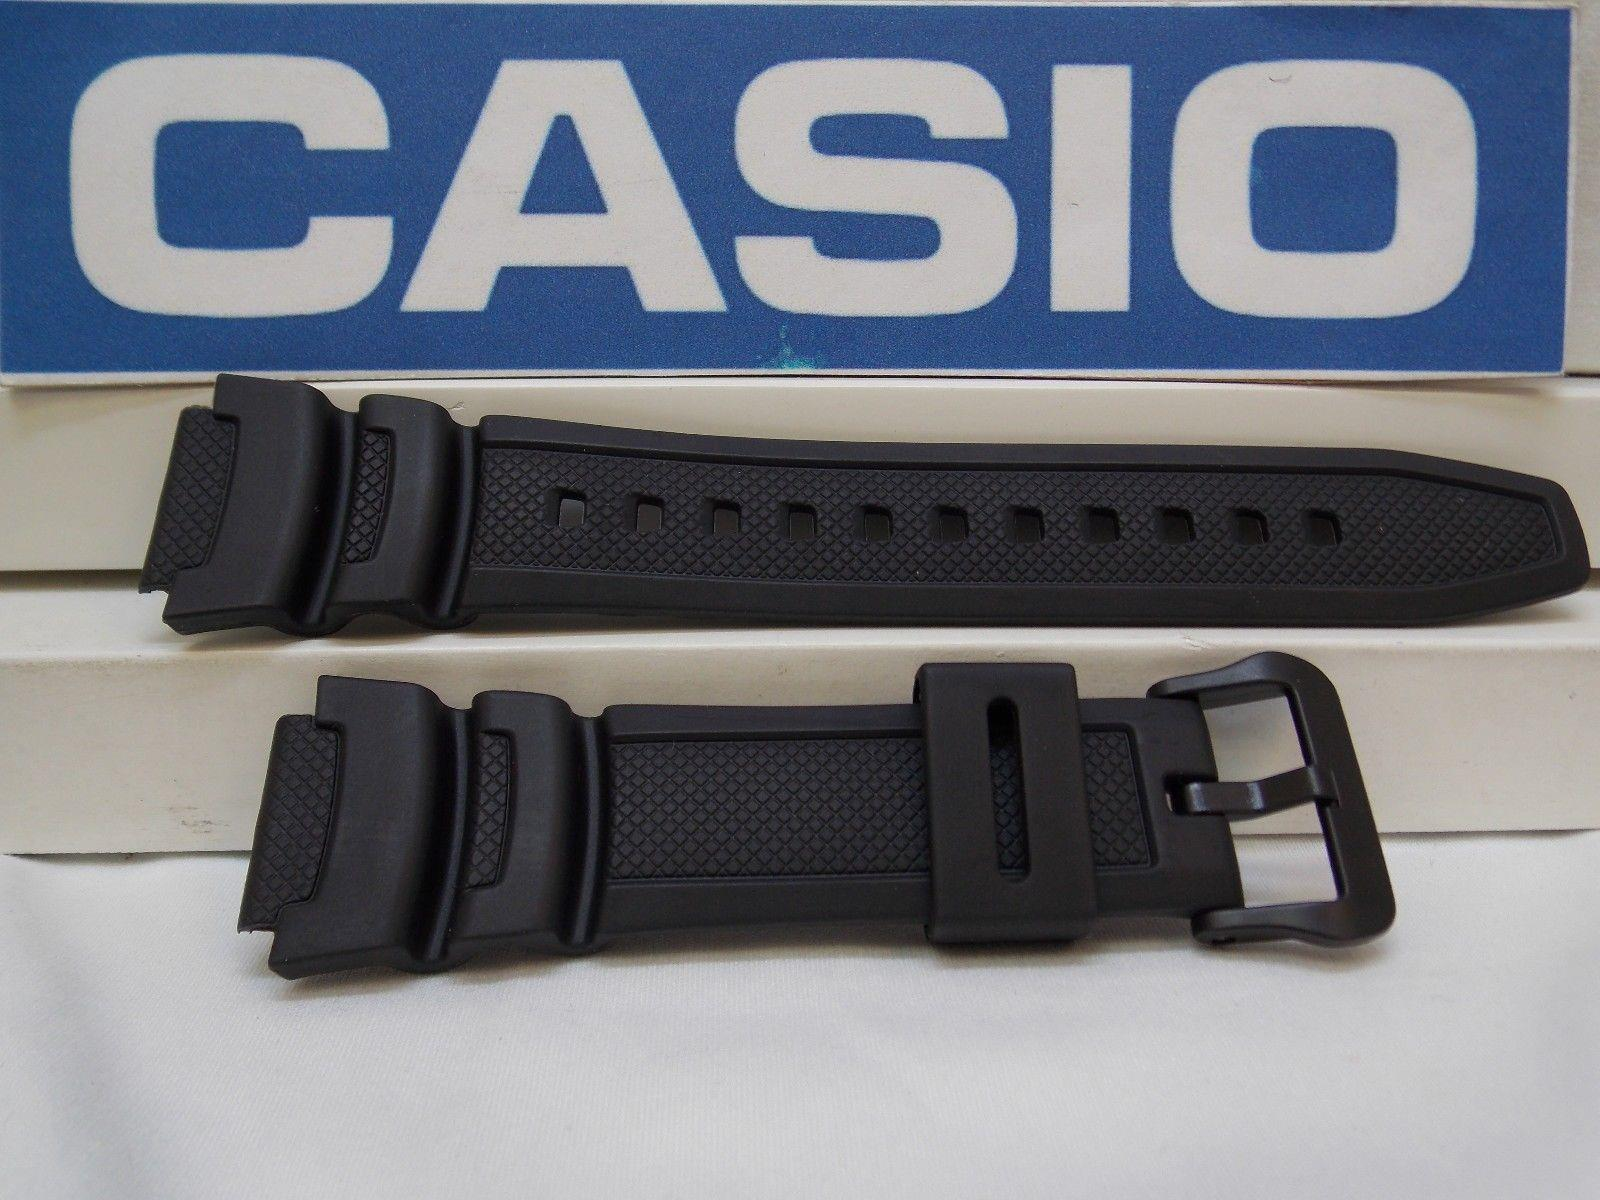 Casio watchband AE-1000, AE-1100 black Resin  Also Fits SGW-400, SGW-300